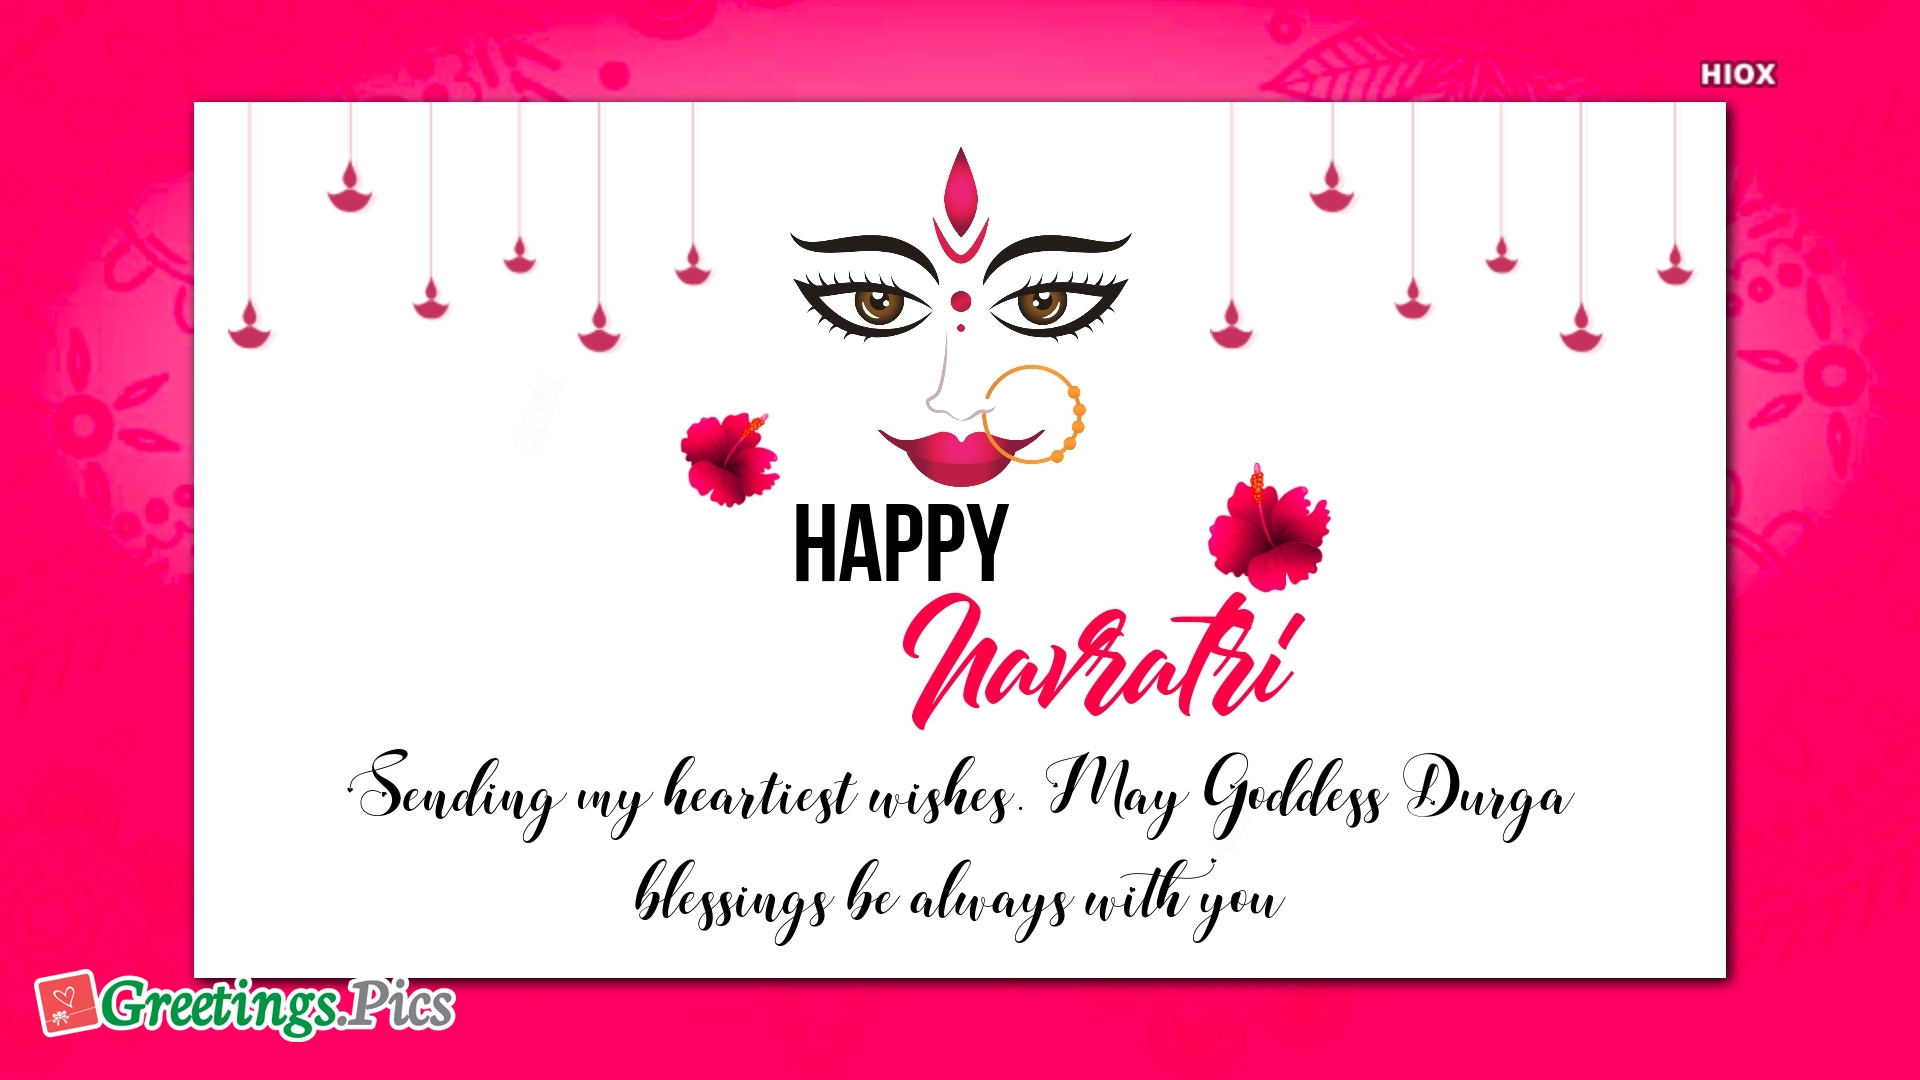 Happy Navratri Wishes Images